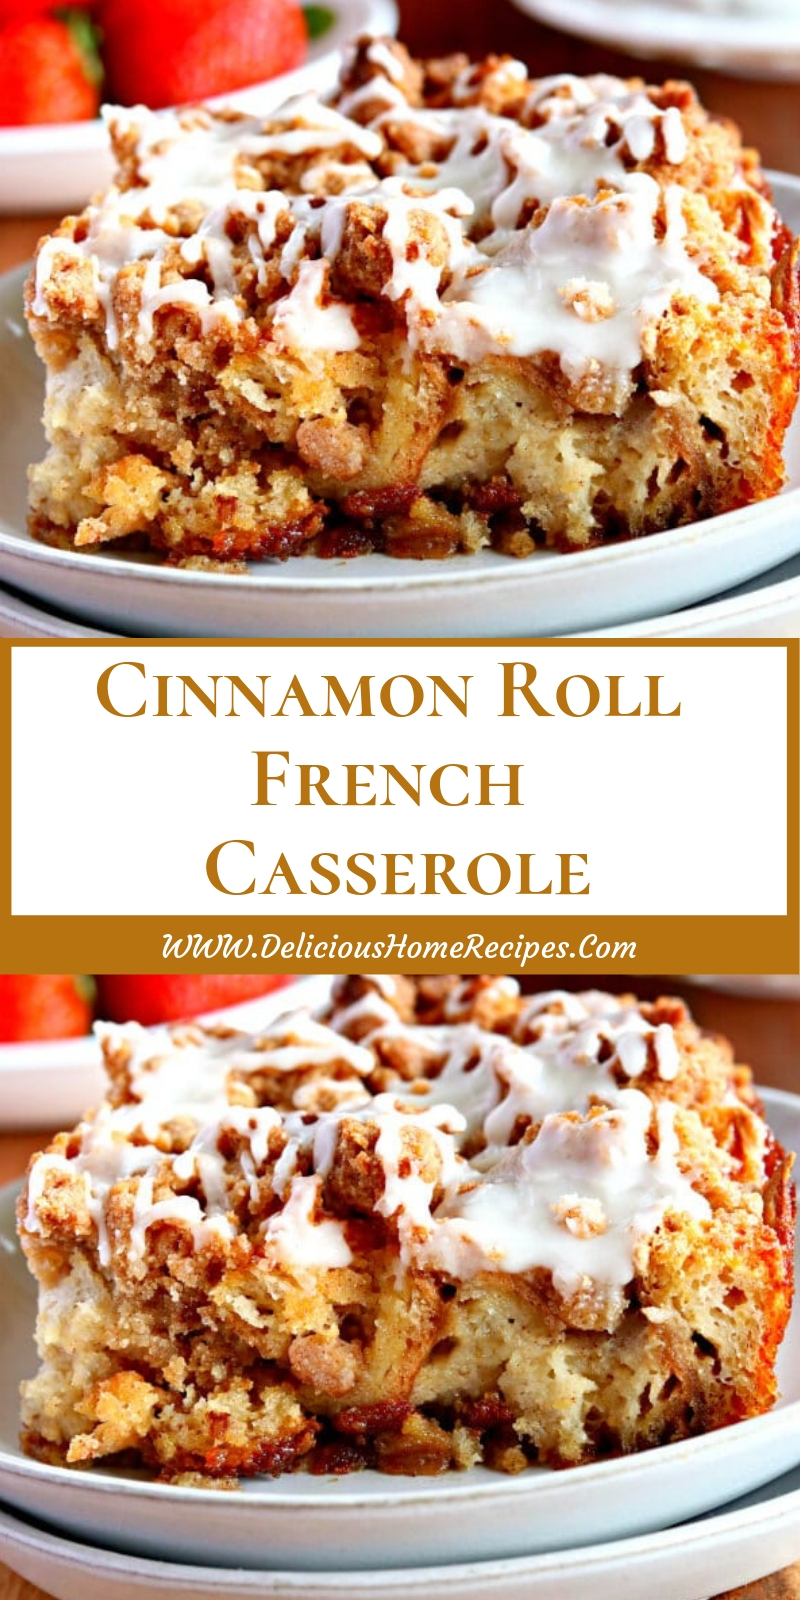 Cinnamon Roll French Casserole